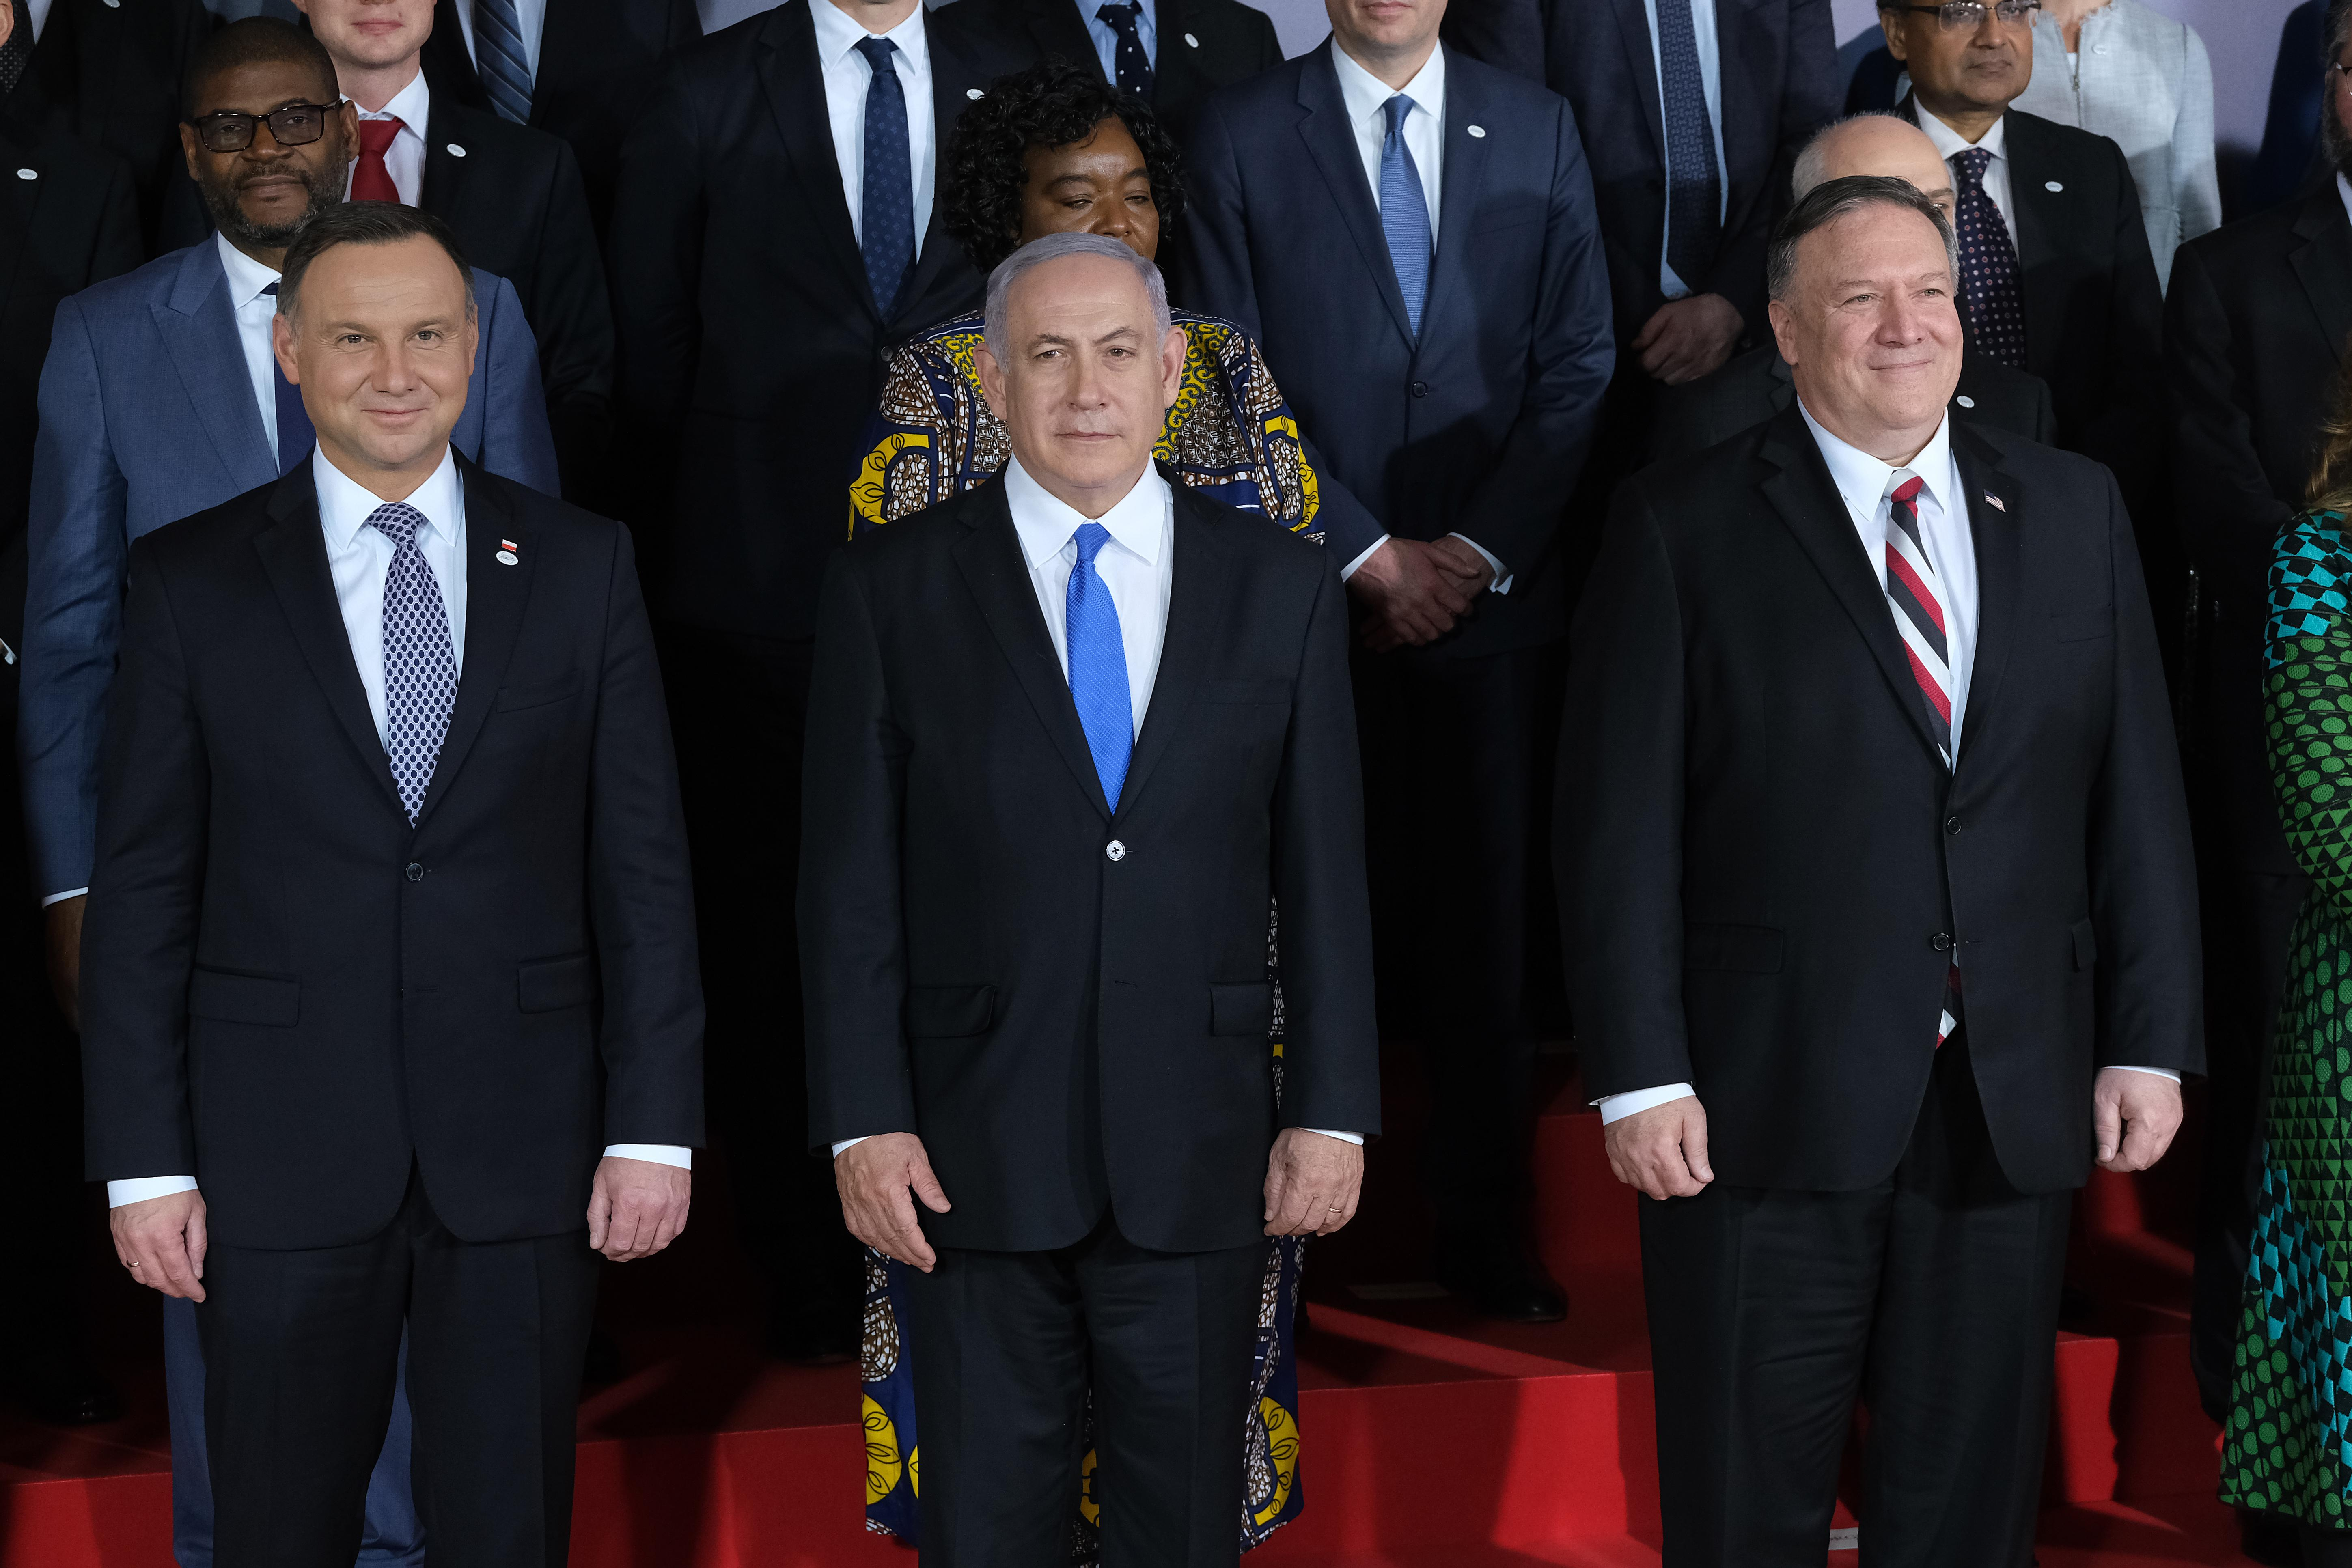 Andrzej Duda, Benjamin Netanyahu, and Mike Pompeo wearing suits and posing for a group photo.